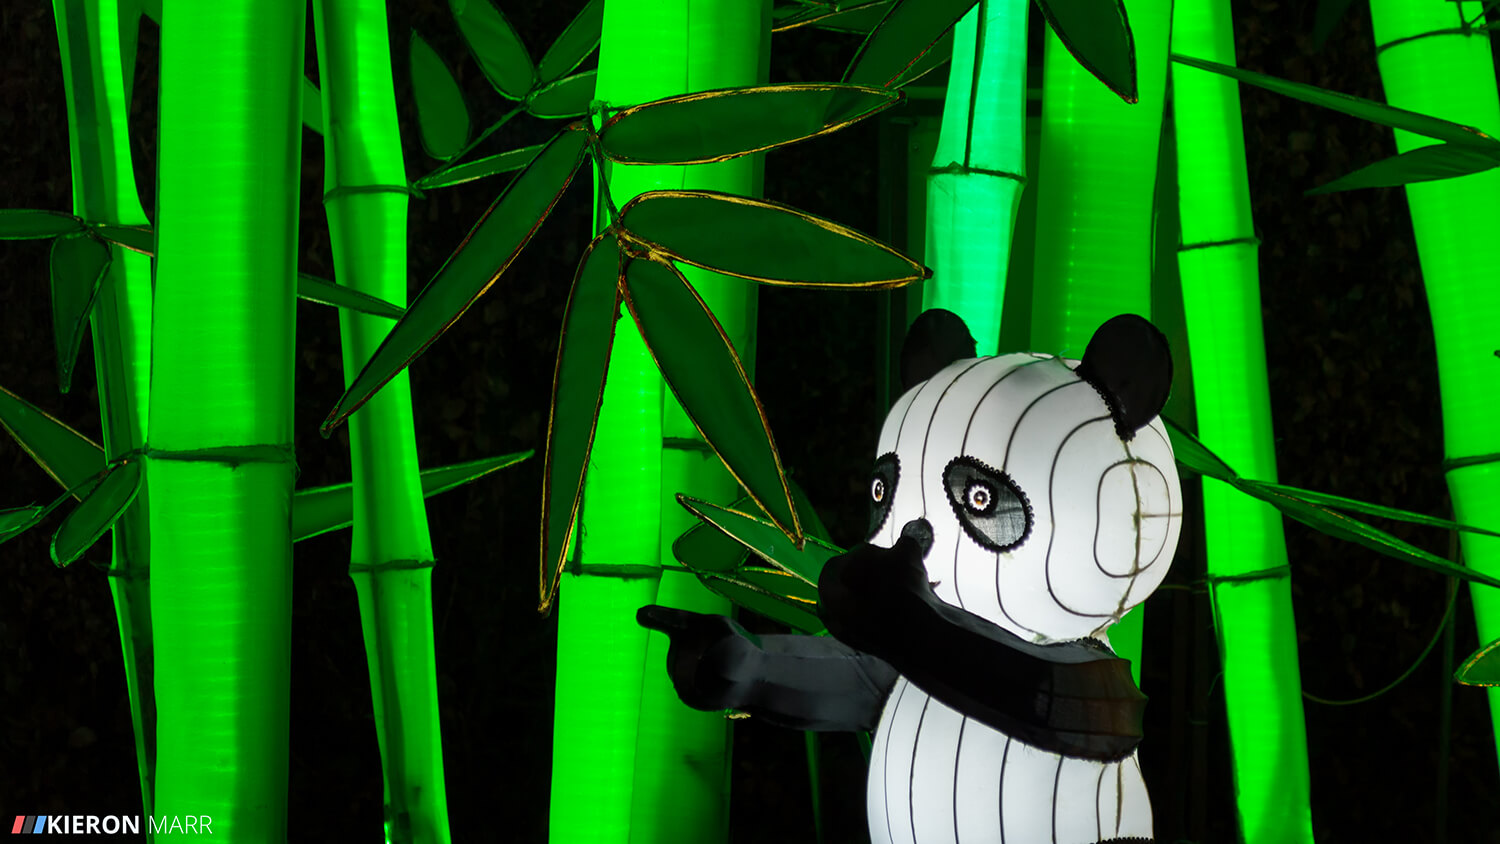 Longleat Festival of Light 2014 - Baby Panda